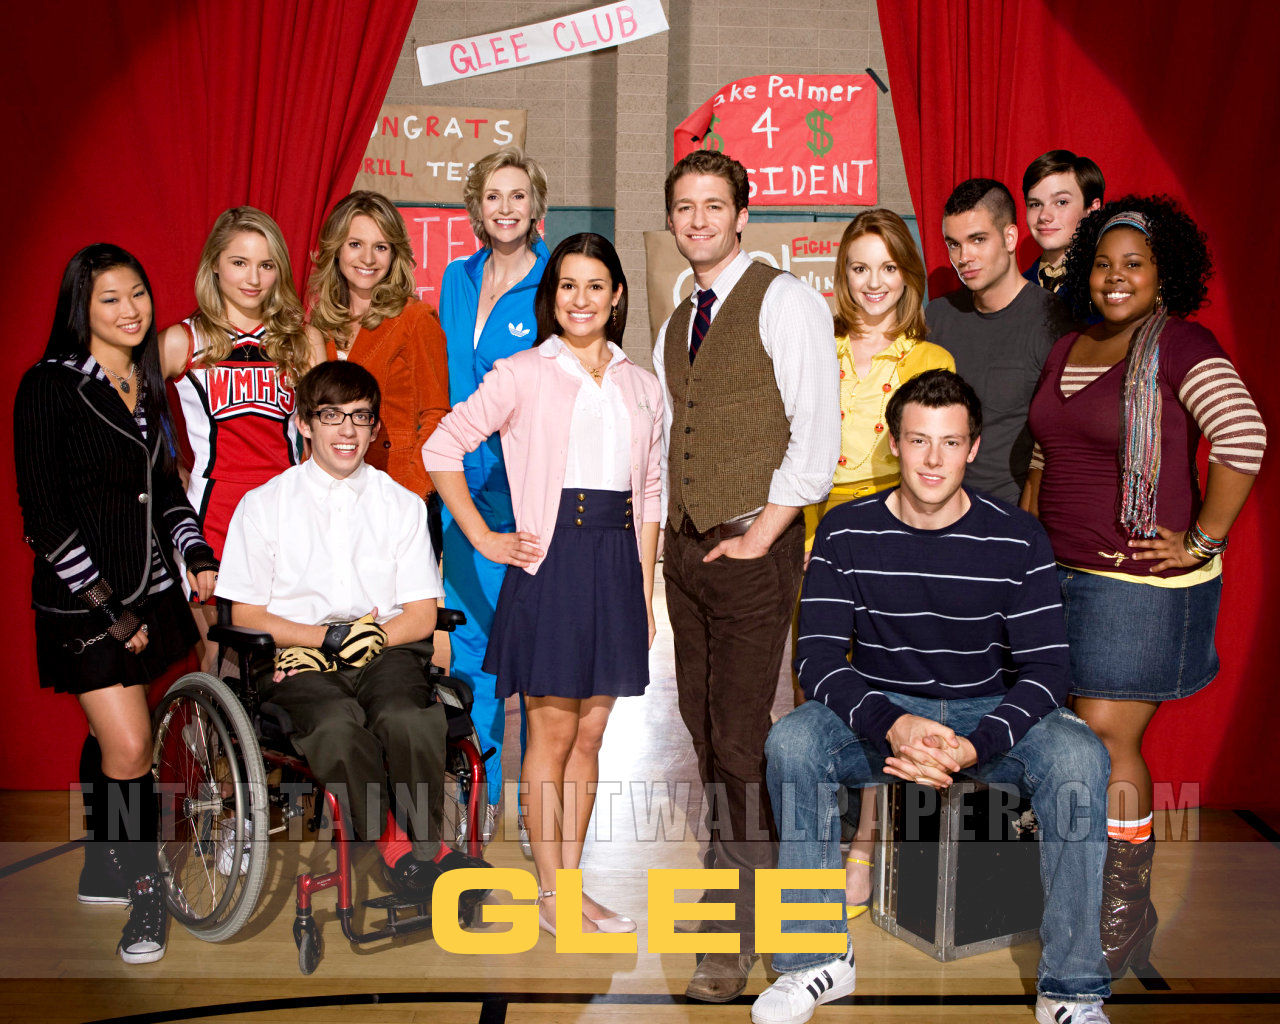 tv show glee wallpaper 20017635 size 1280x1024 more glee wallpaper 1280x1024